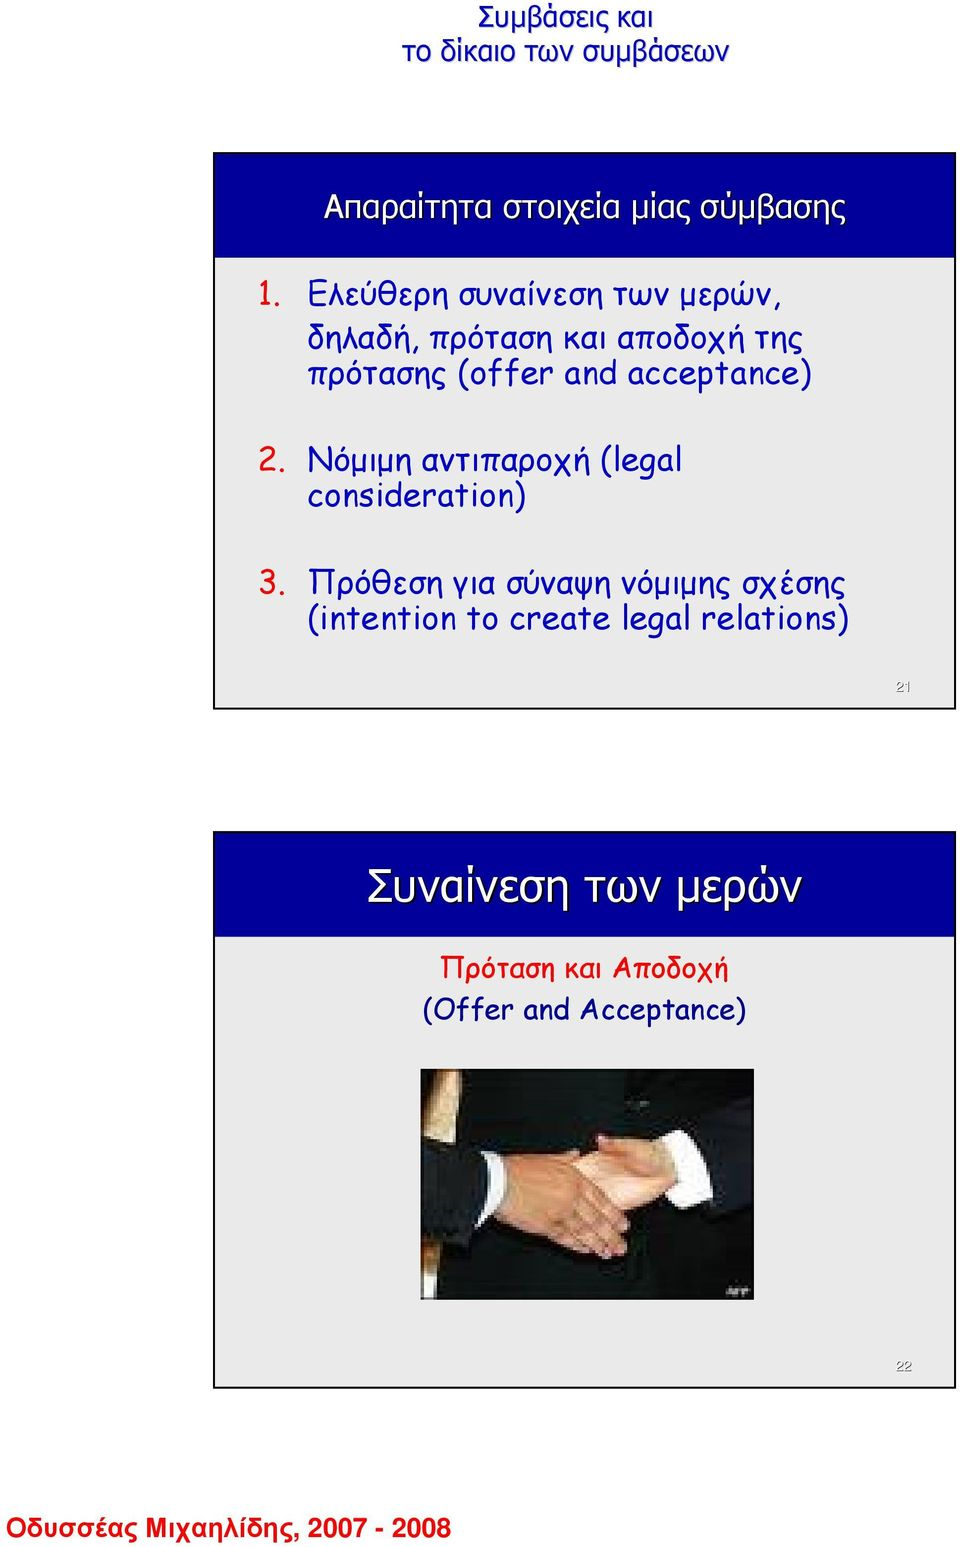 and acceptance) 2. Νόµιµη αντιπαροχή (legal consideration) 3.